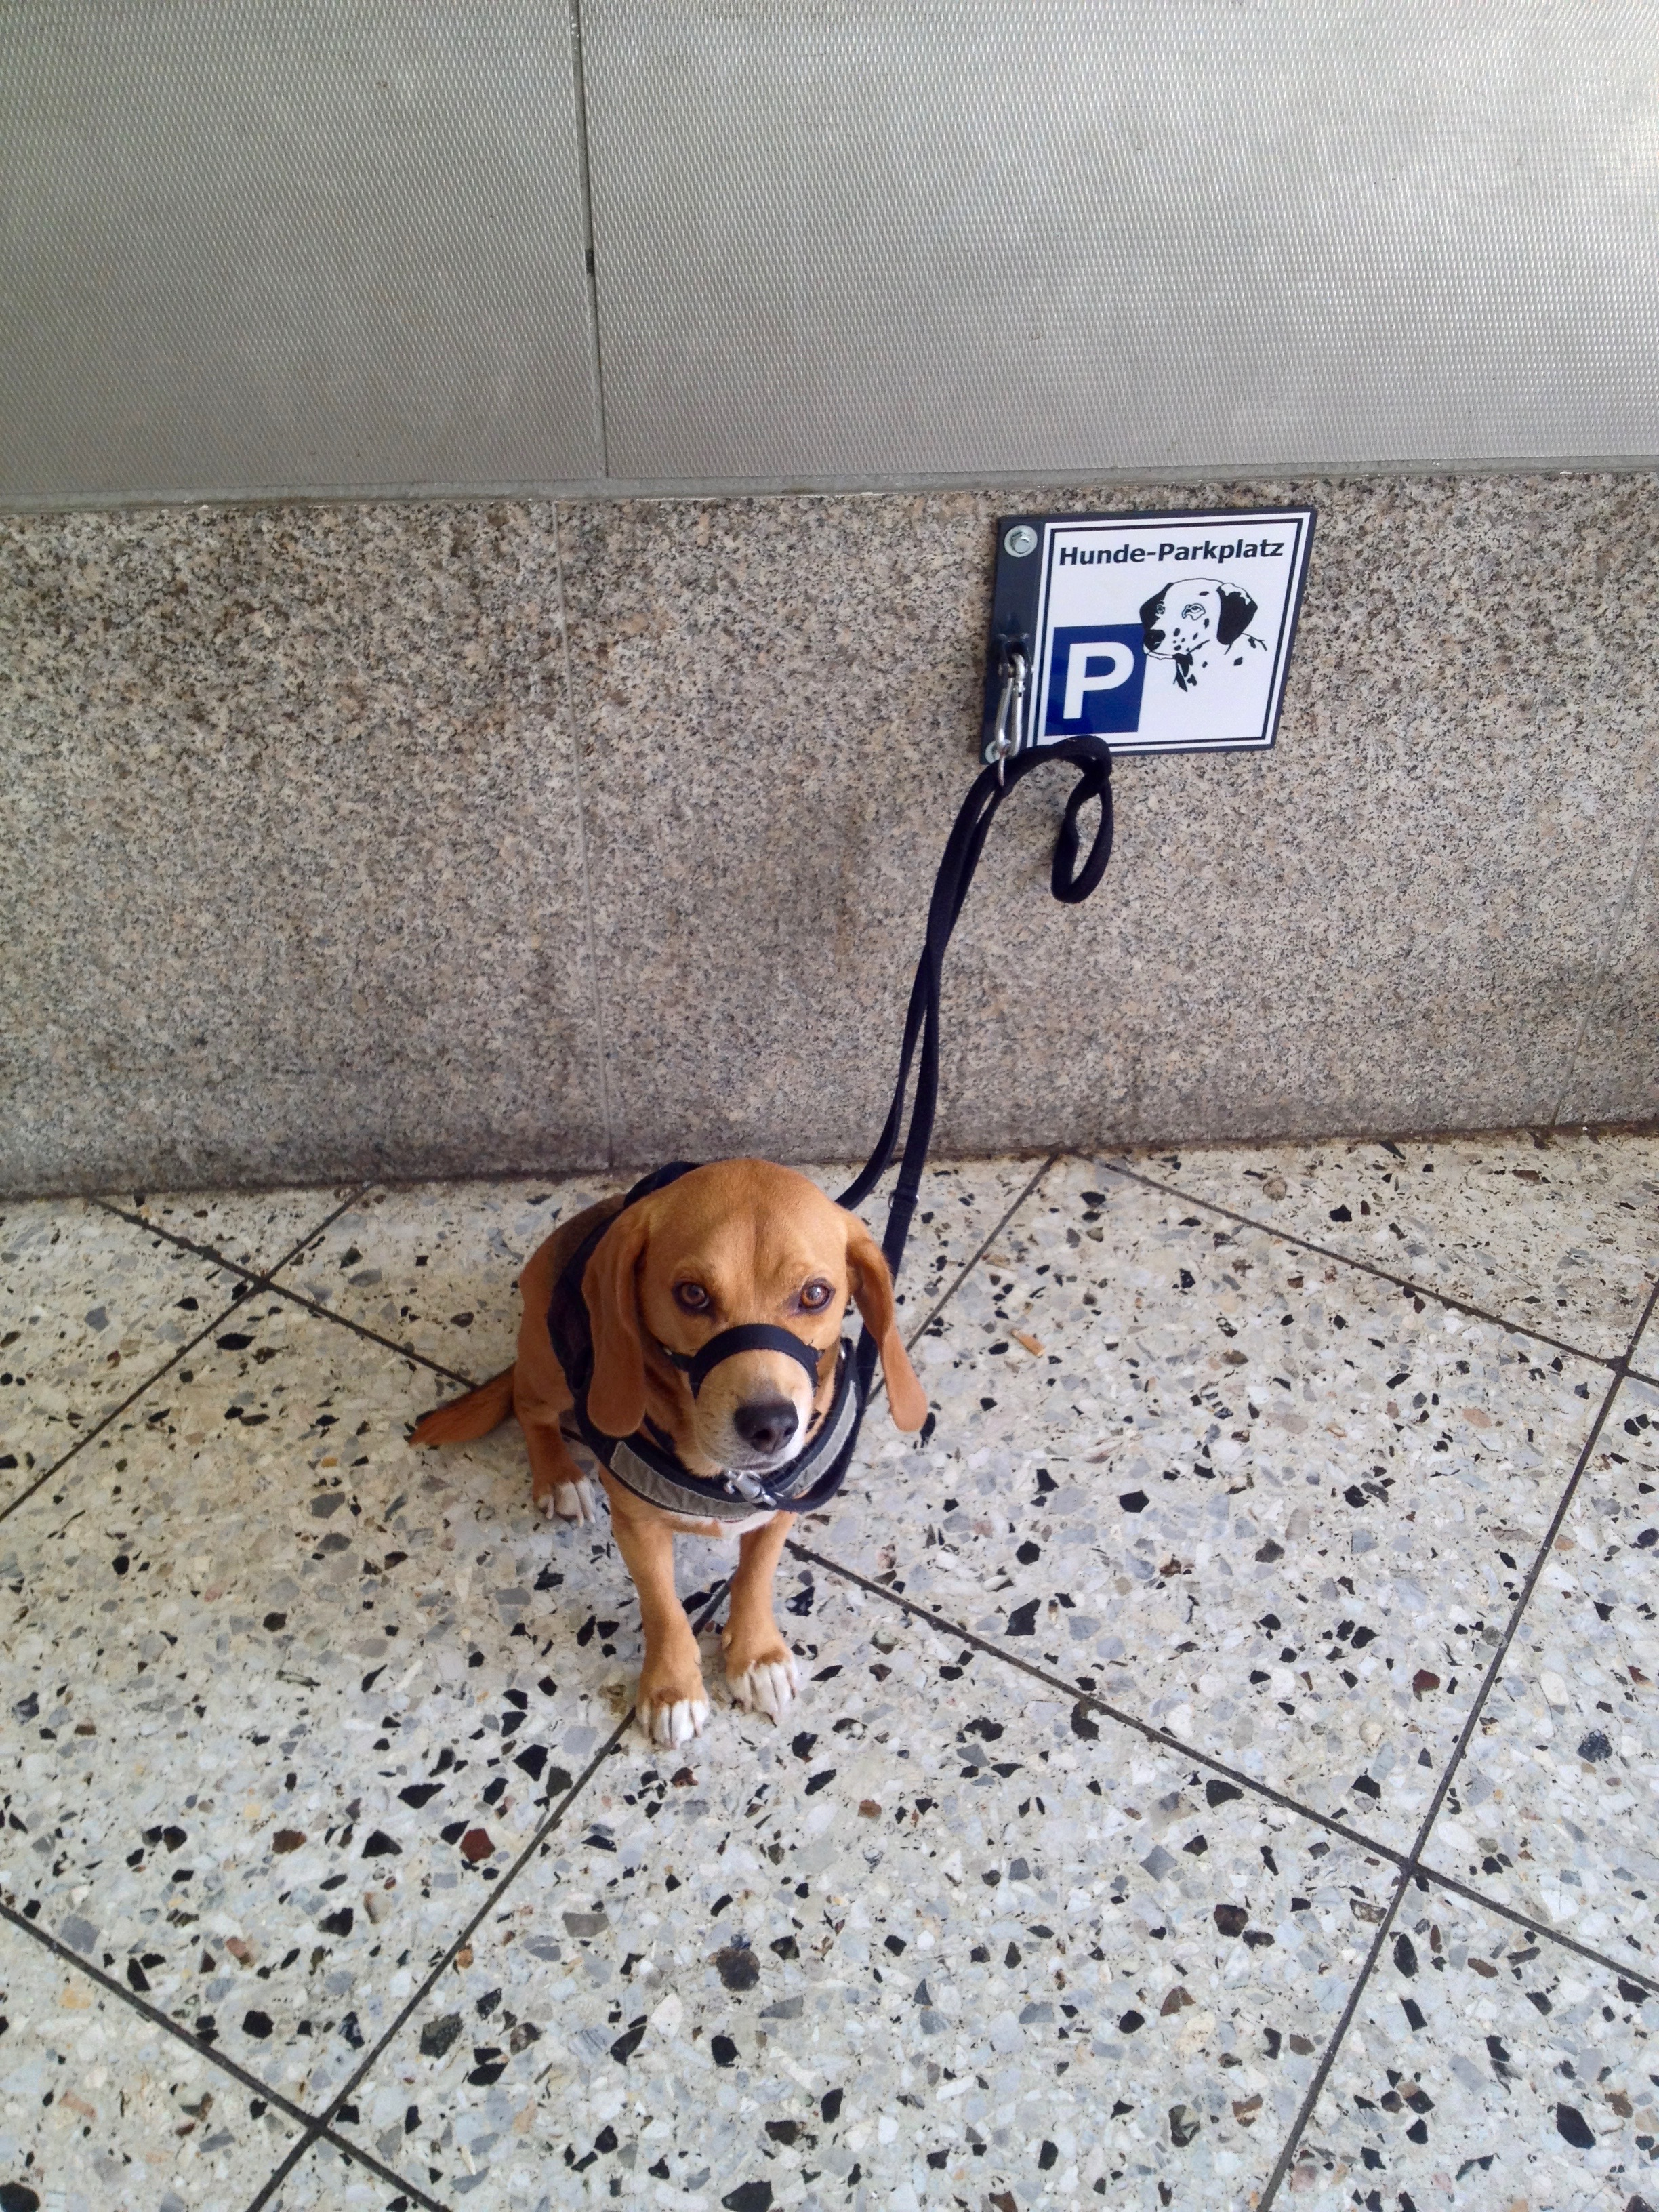 """Leo waiting patiently for me at the """"dog parking spot"""" (Note that he's wearing his Gentle Leader which I highly recommend if your dog tugs on his leash while walking.)"""